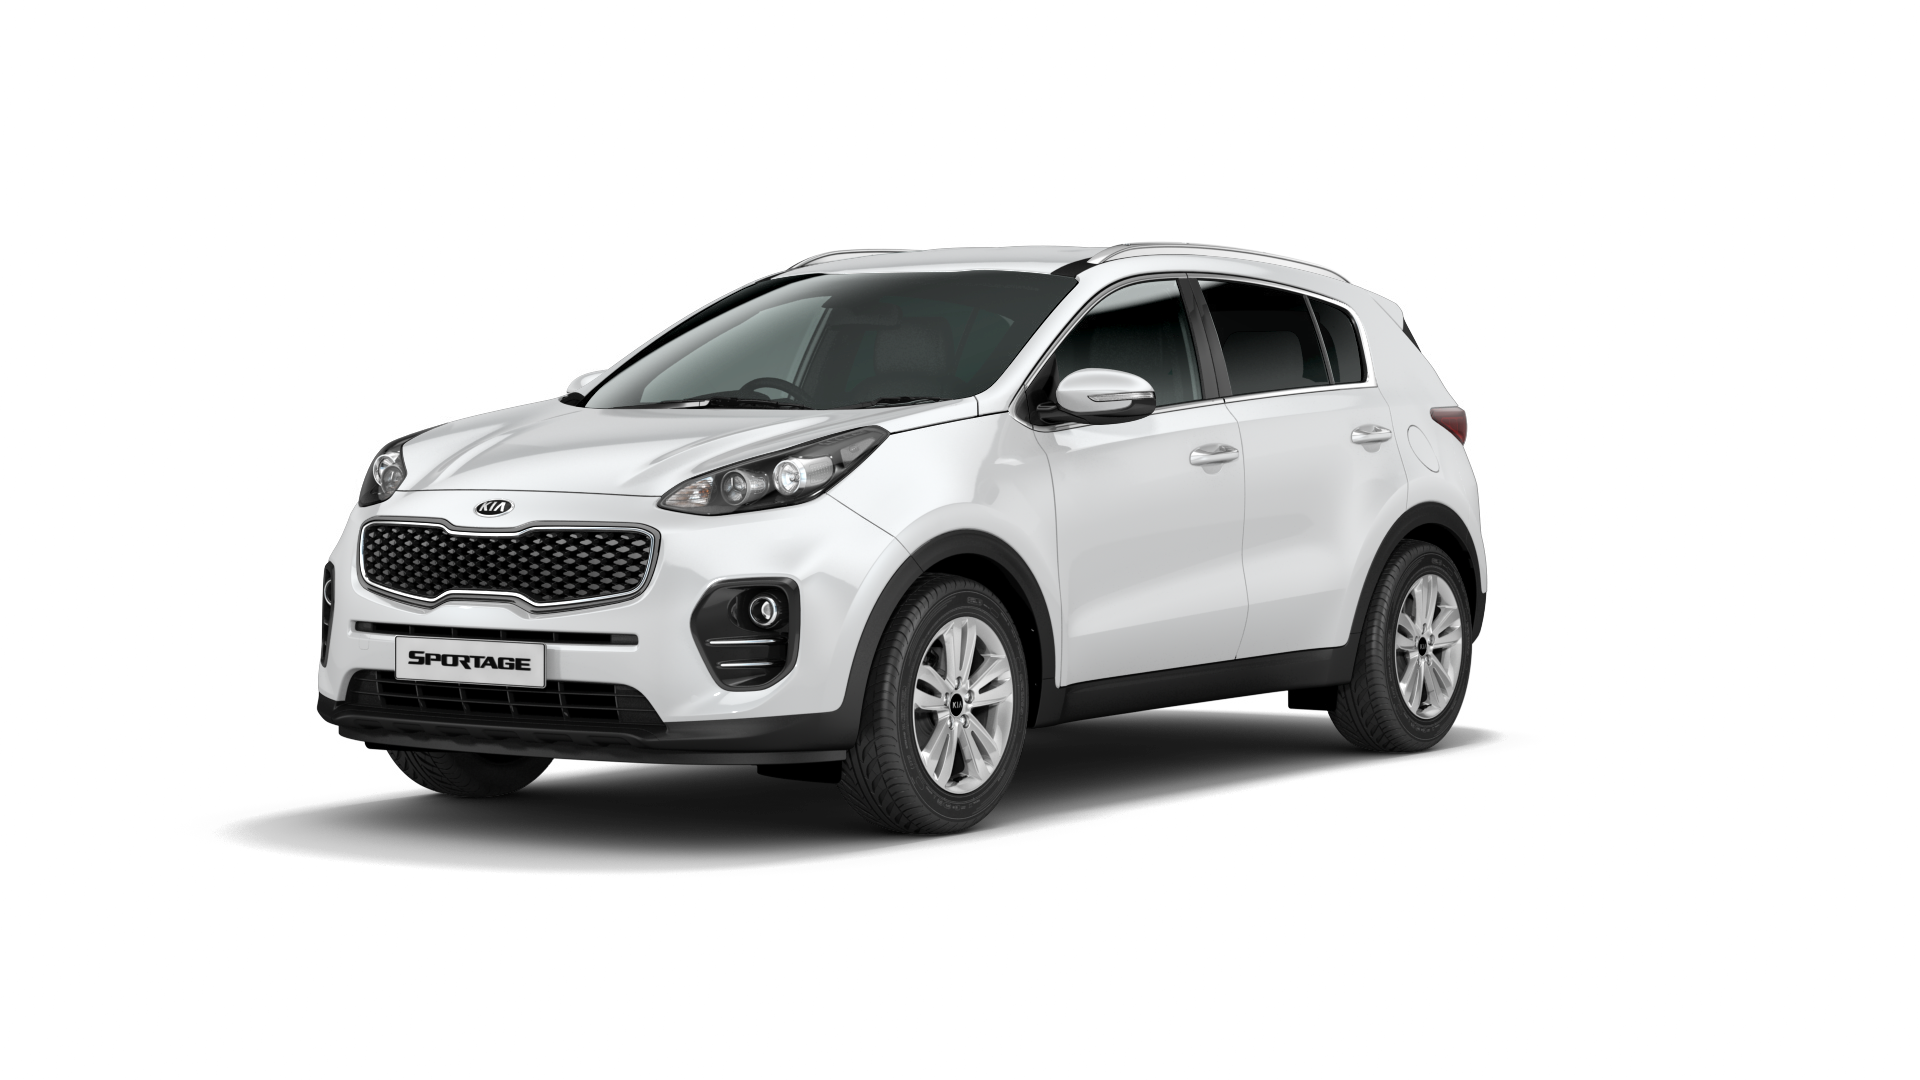 Sportage '2' 1.6 GDi Petrol Offer